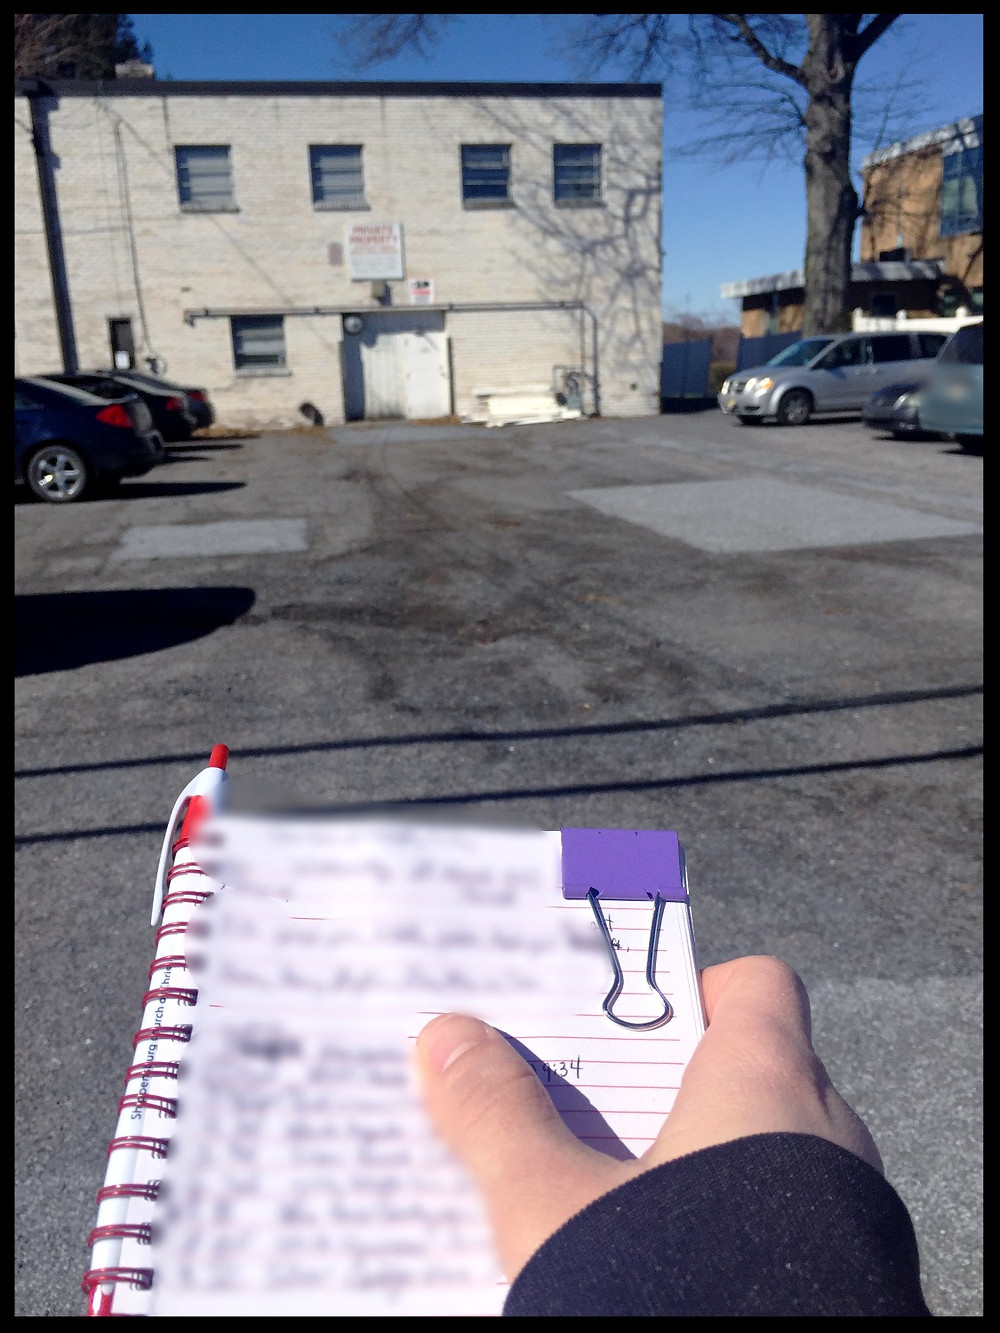 The notebook. (Used to make sure we don't miss anyone who goes inside).